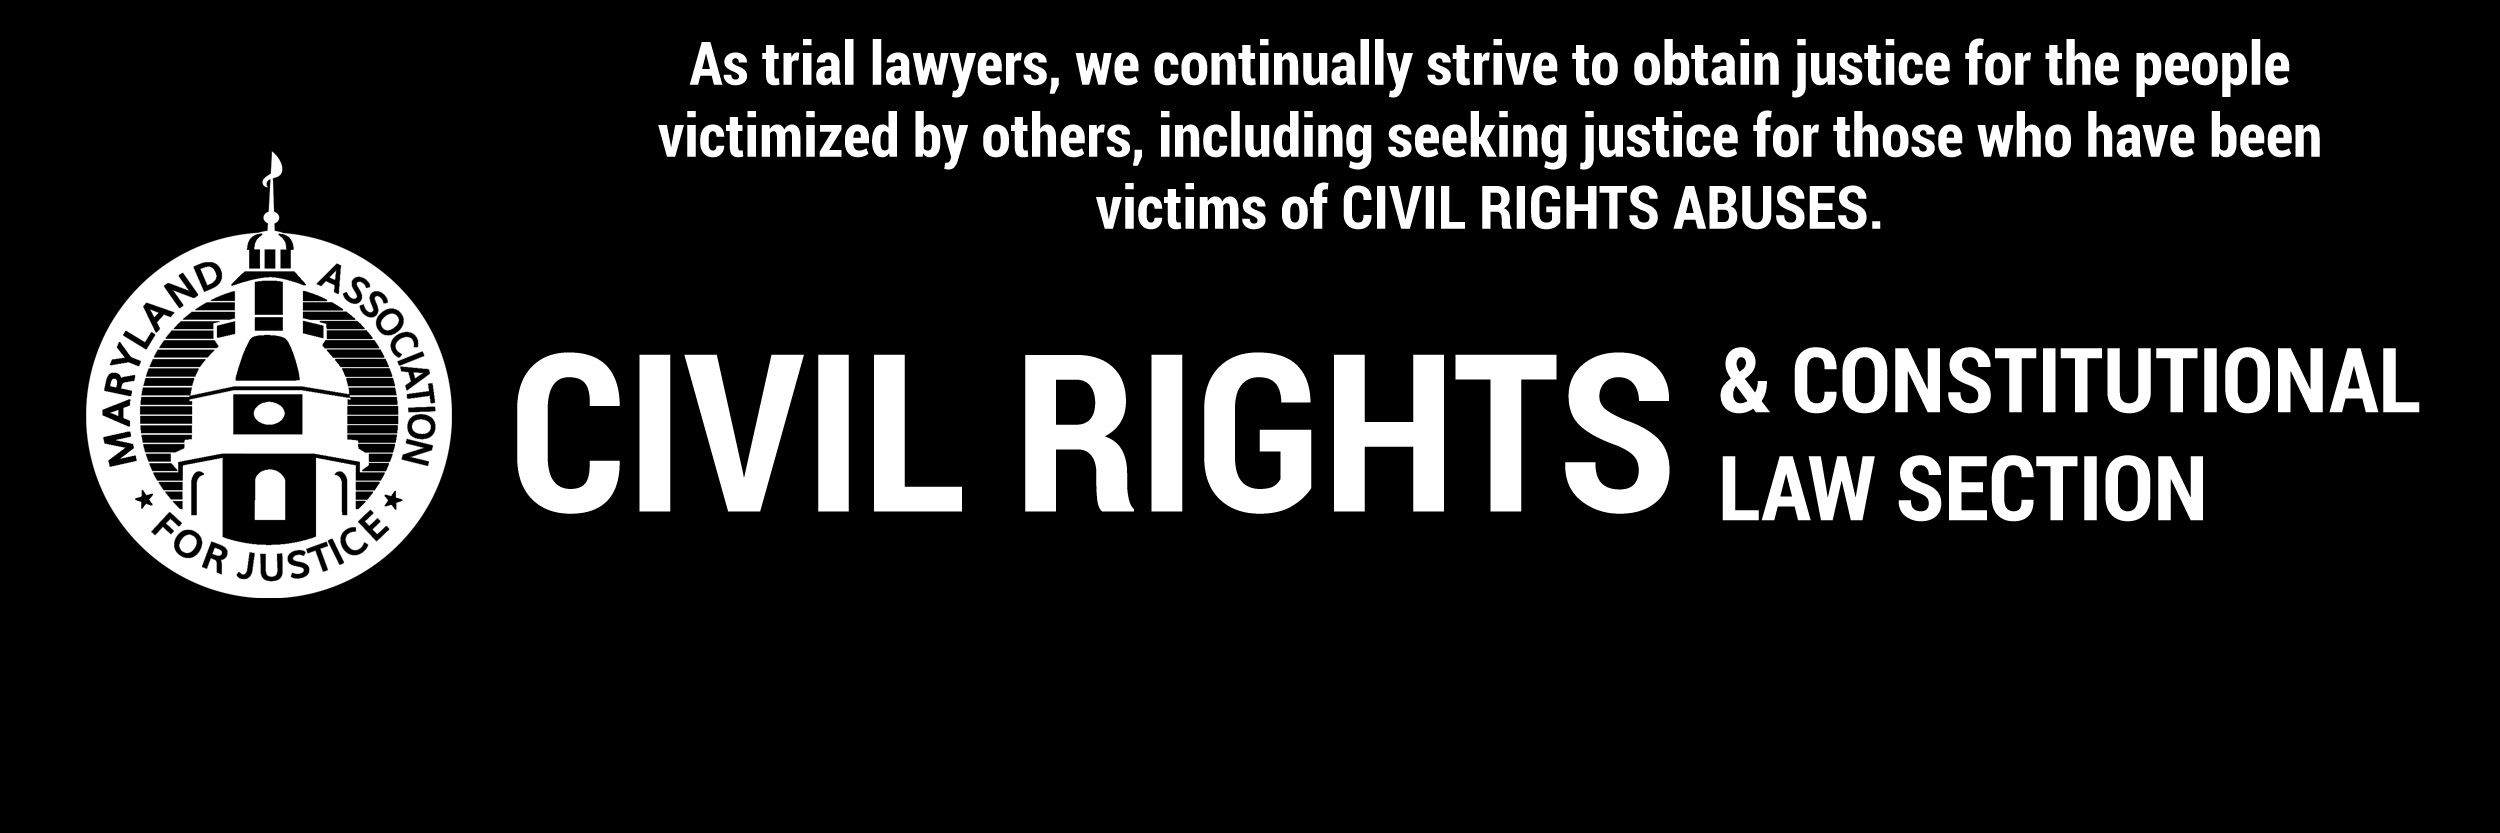 Maryland Association for Justice Civil Rights and Constitutional Law Section